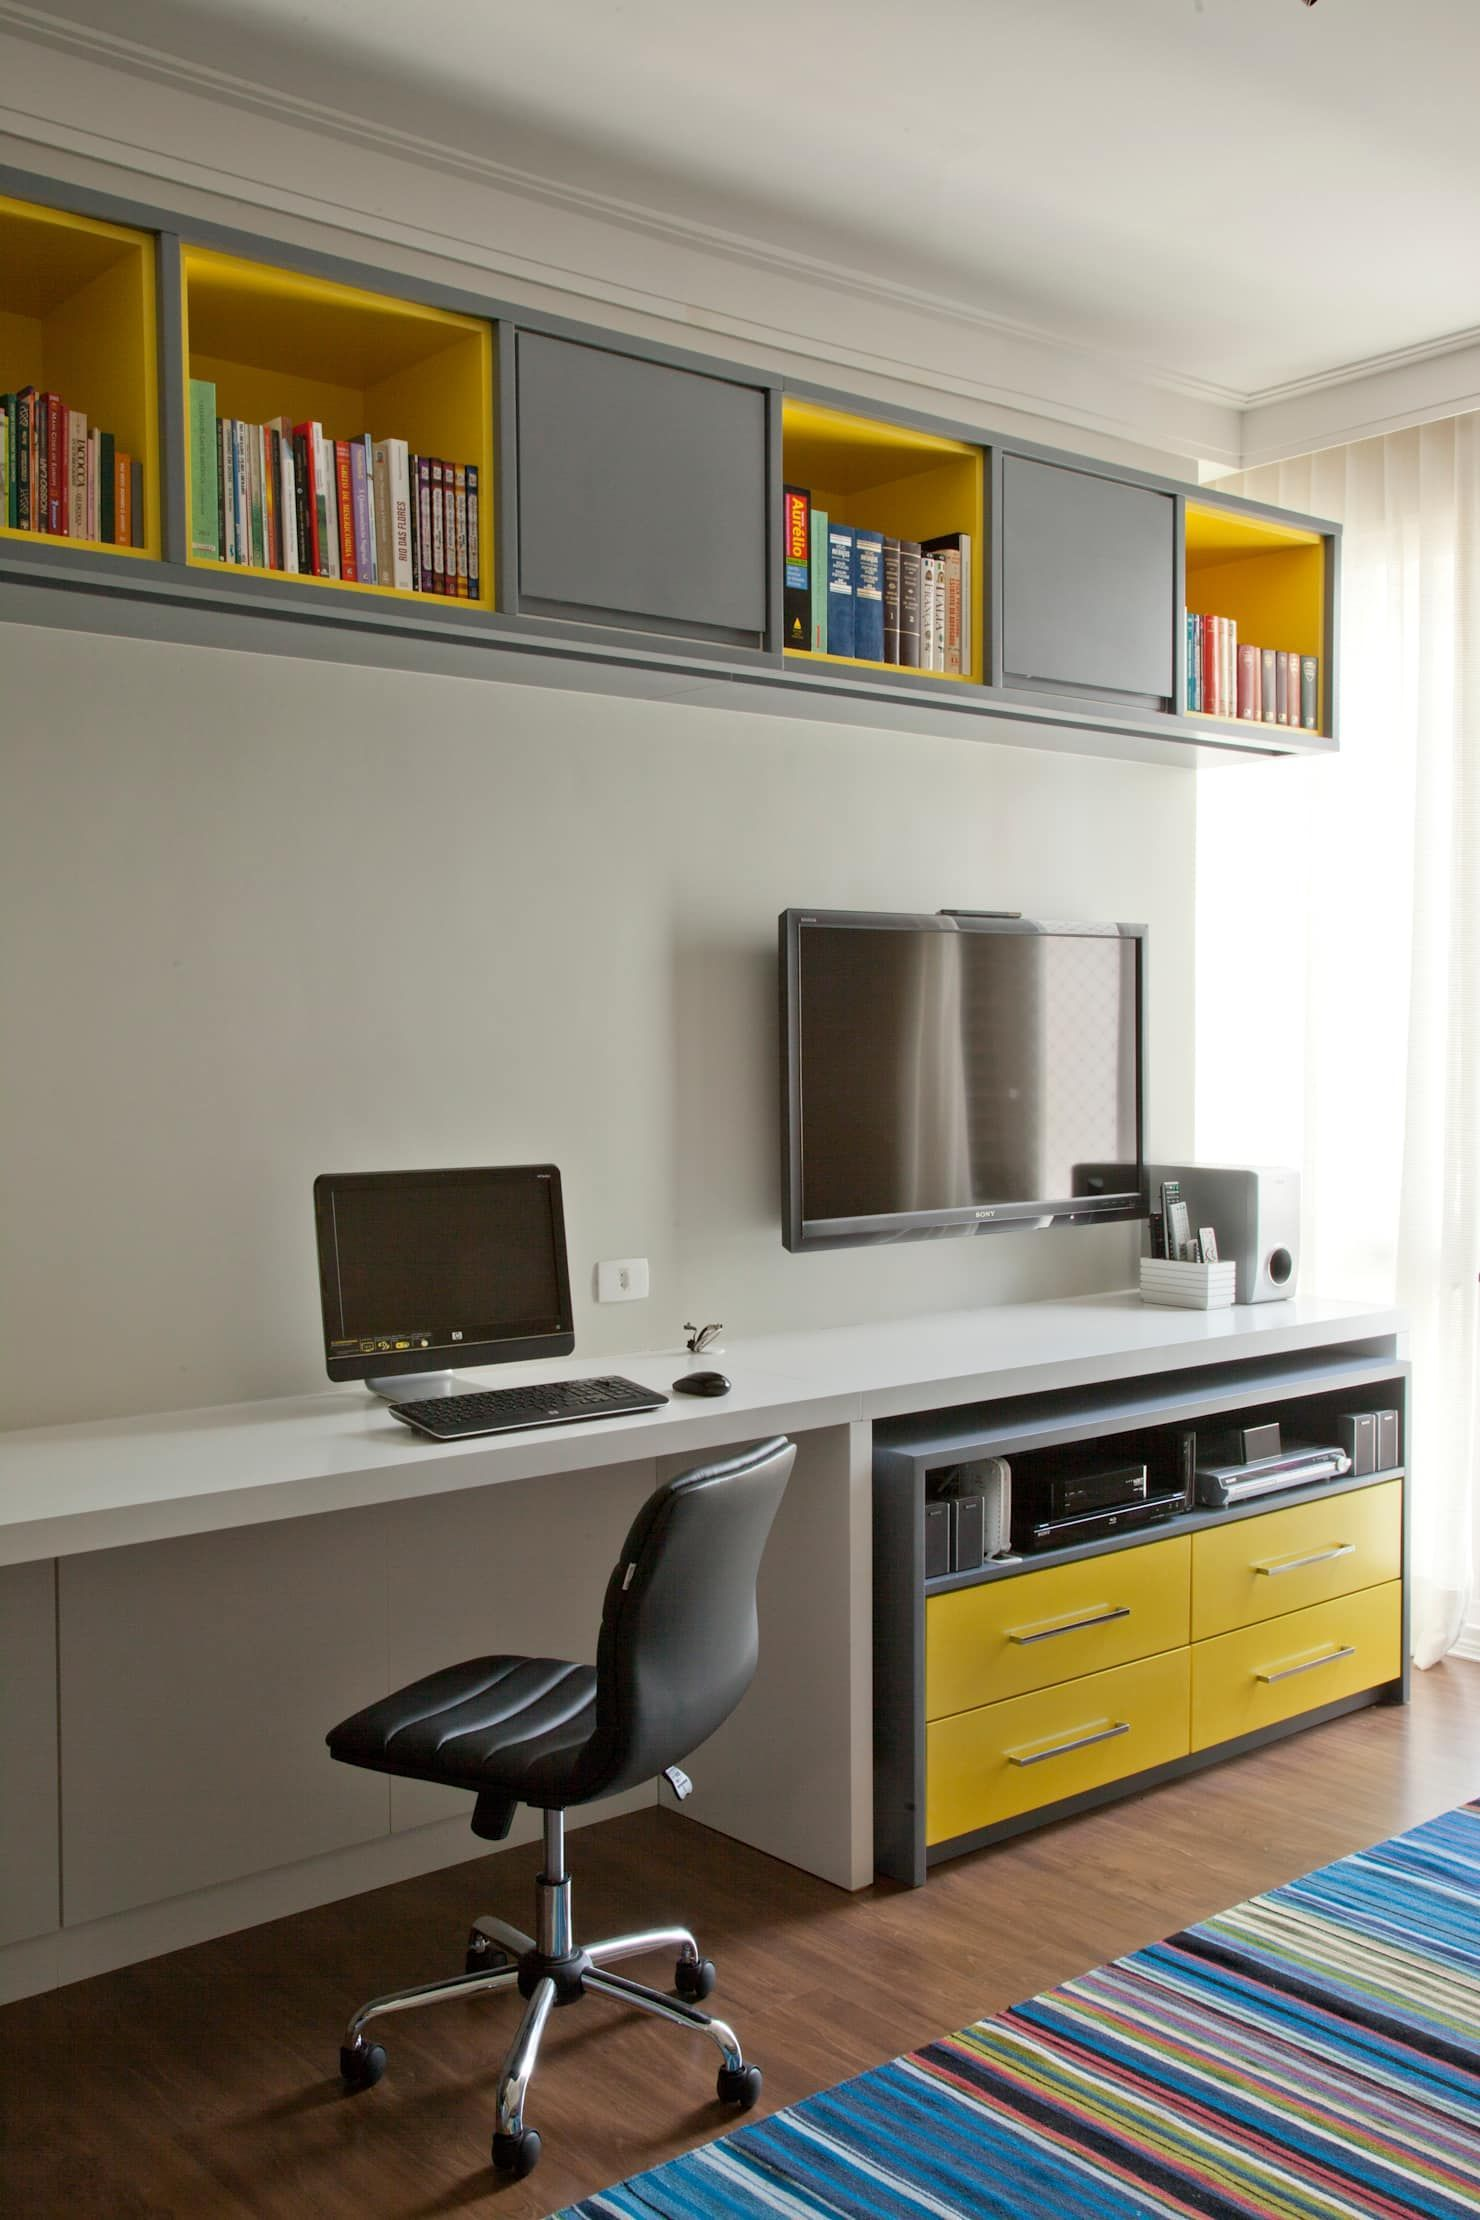 Olkd Study Room: Tired With Your Research Room Or Work Space? Here Are Some